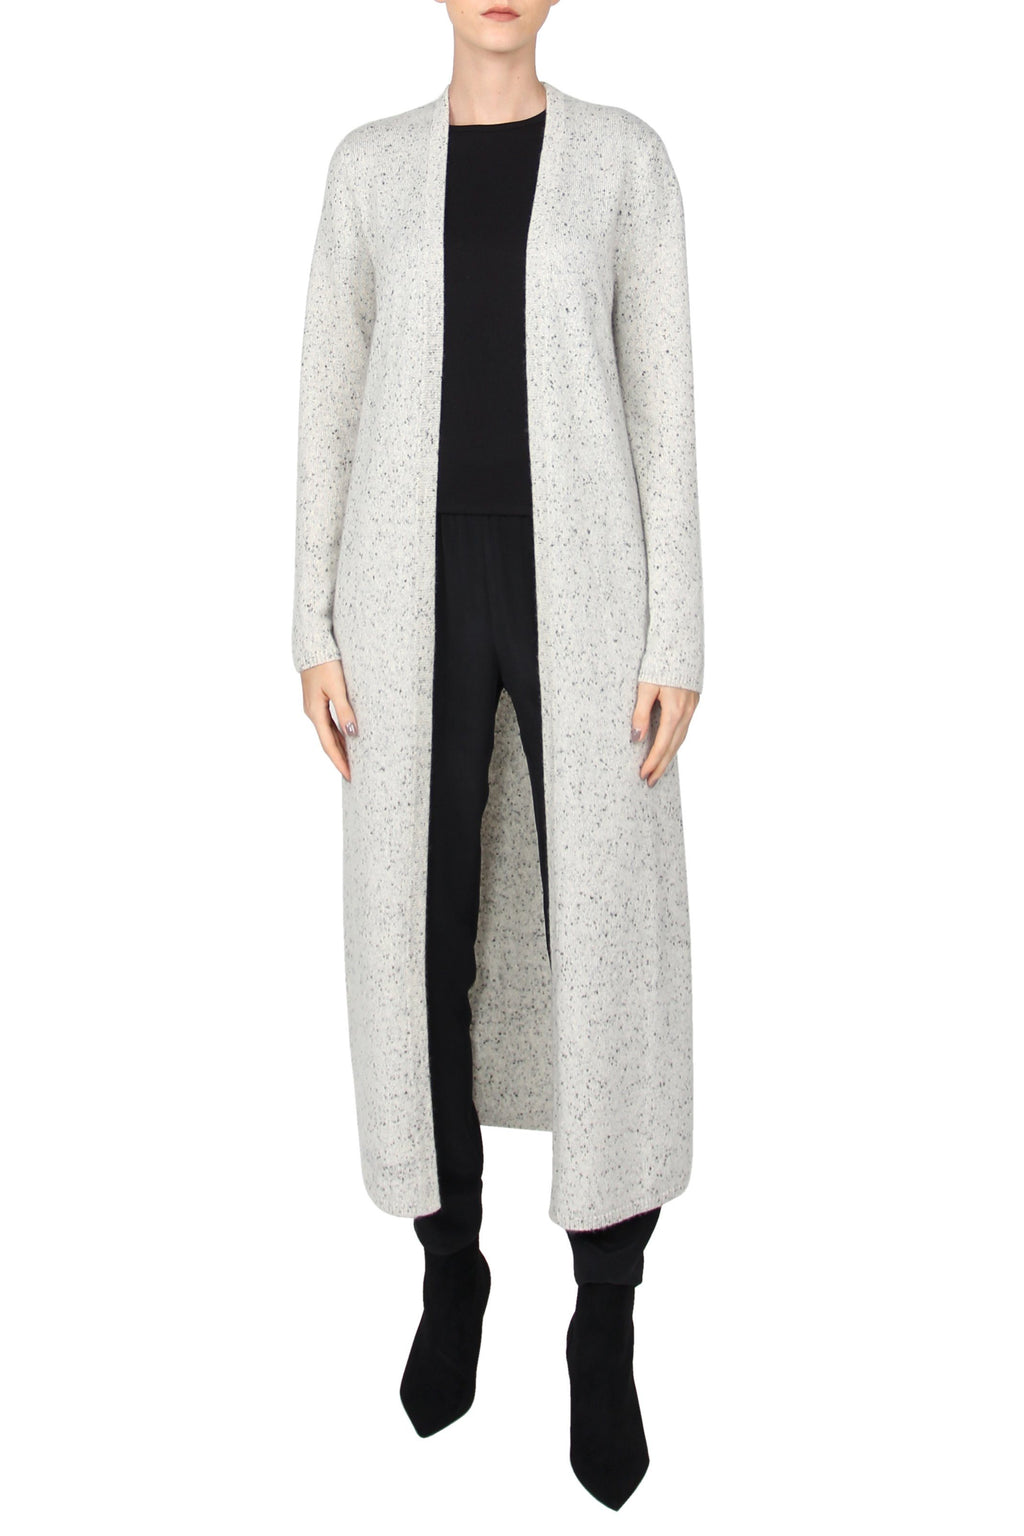 Frost Cashmere Cardi Coat Marie France Van Damme 0/1 Frost